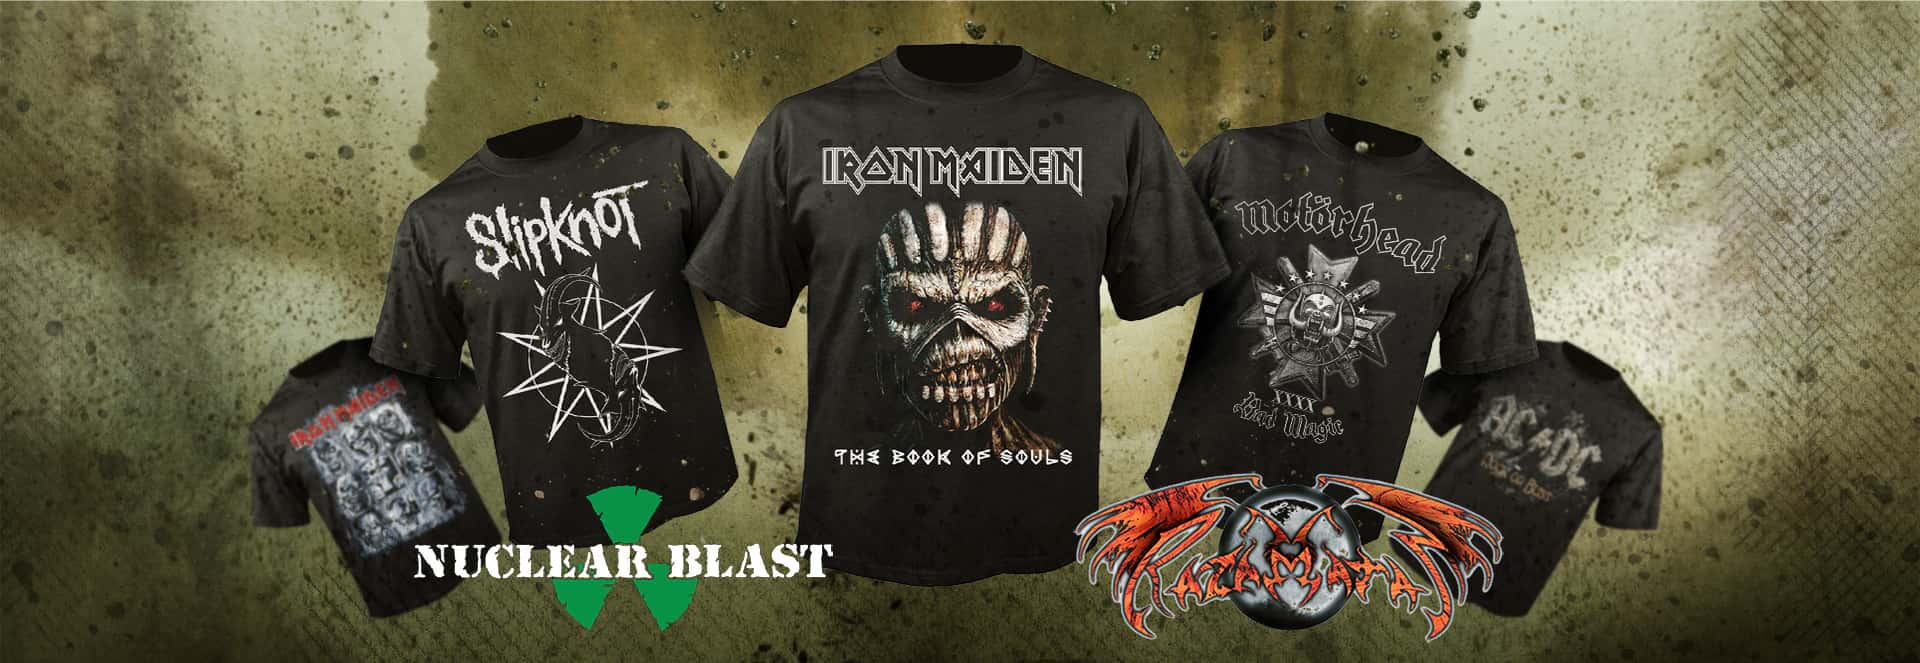 Licensed Merch from NUCLEAR BLAST and RAZAMATAZ